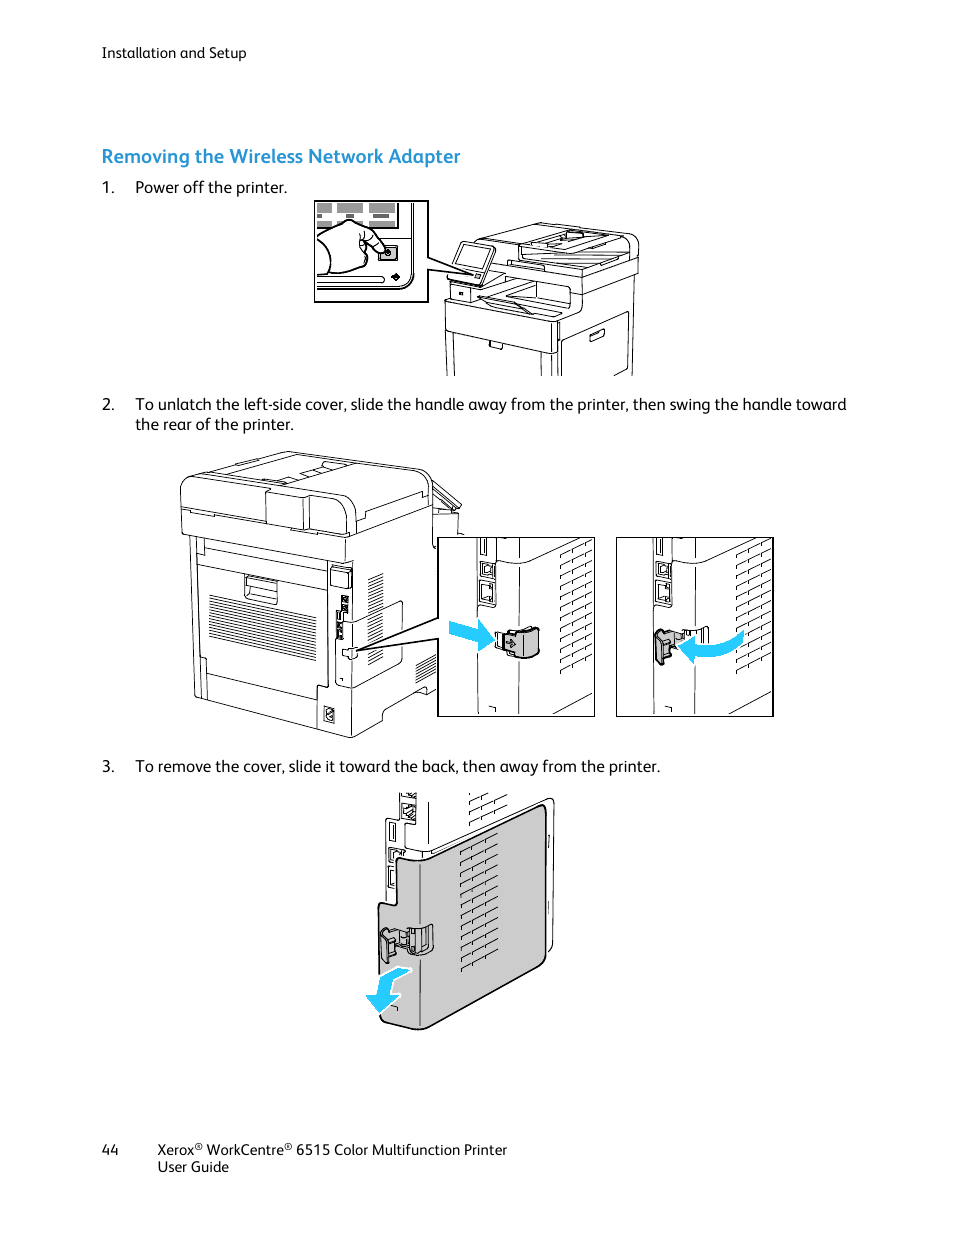 medium resolution of removing the wireless network adapter e 44 xerox workcentre 6515dni user manual